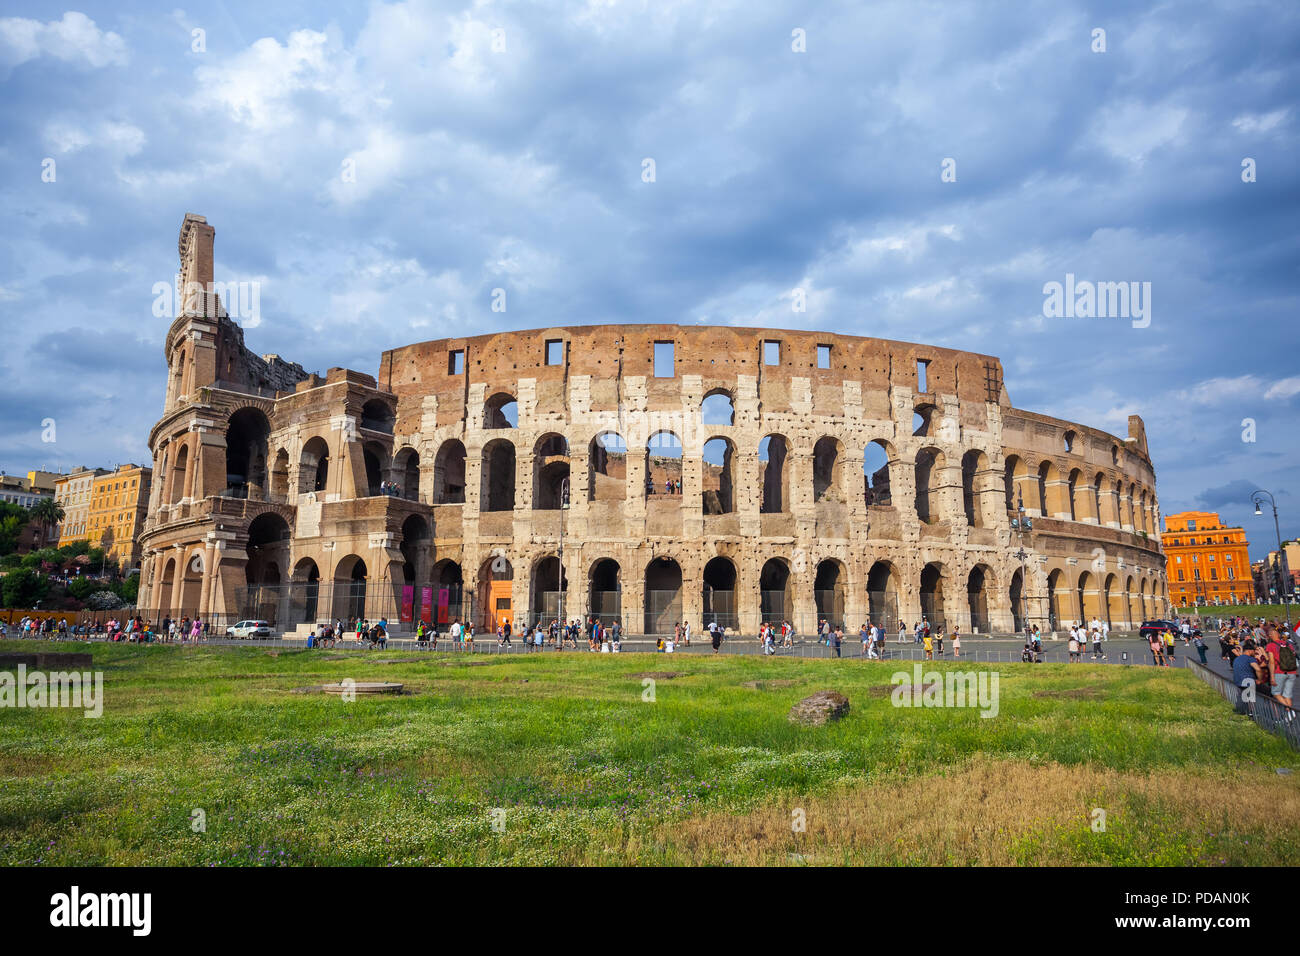 Rome, Italy - 22.06.2018: Colosseum in Rome, Italy. Roman Colosseum is one of the main travel attractions. - Stock Image